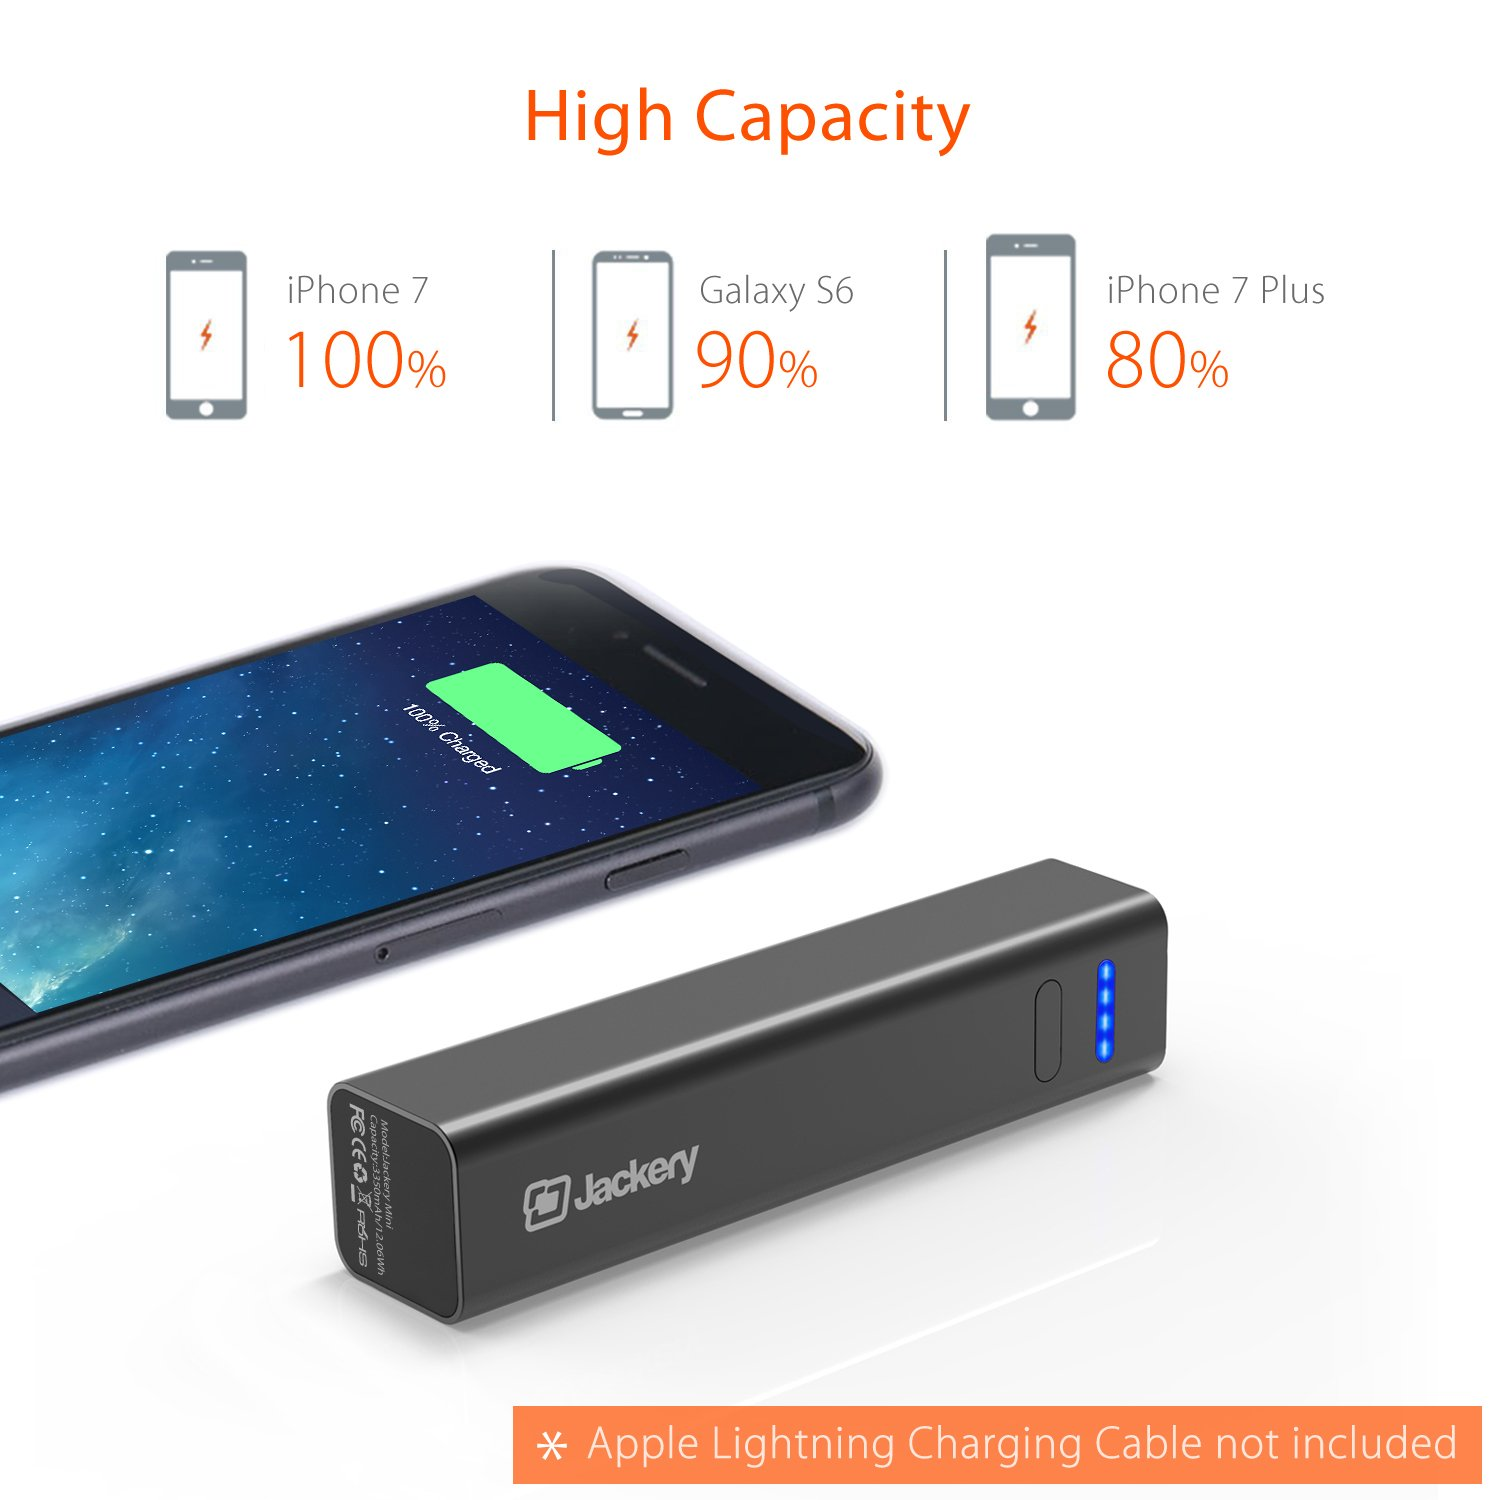 The Smallest Jackery Mini 3350mah Portable Charger An374 1 Watt L 8 8211 16 Volts Audio Amplifier Premium Aluminum Power Bank Iphone For Xs Max Xr X 7 6 5 Samsung Galaxy S9 S8 S7 S6 Black Cell Phones Accessories